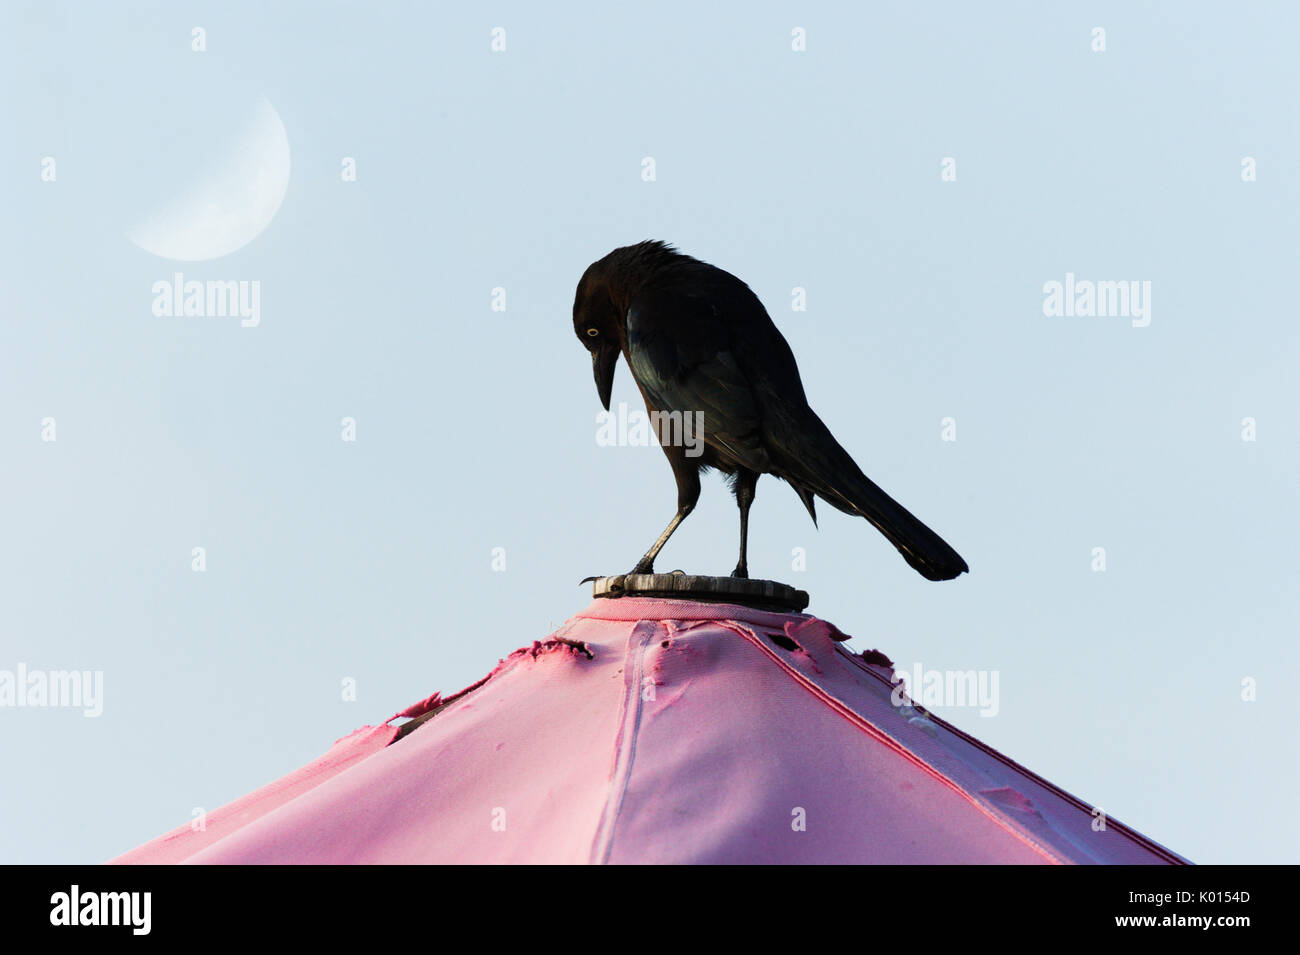 Raven bird black is a black Raven bird sstanding looking contemplative and serious. - Stock Image